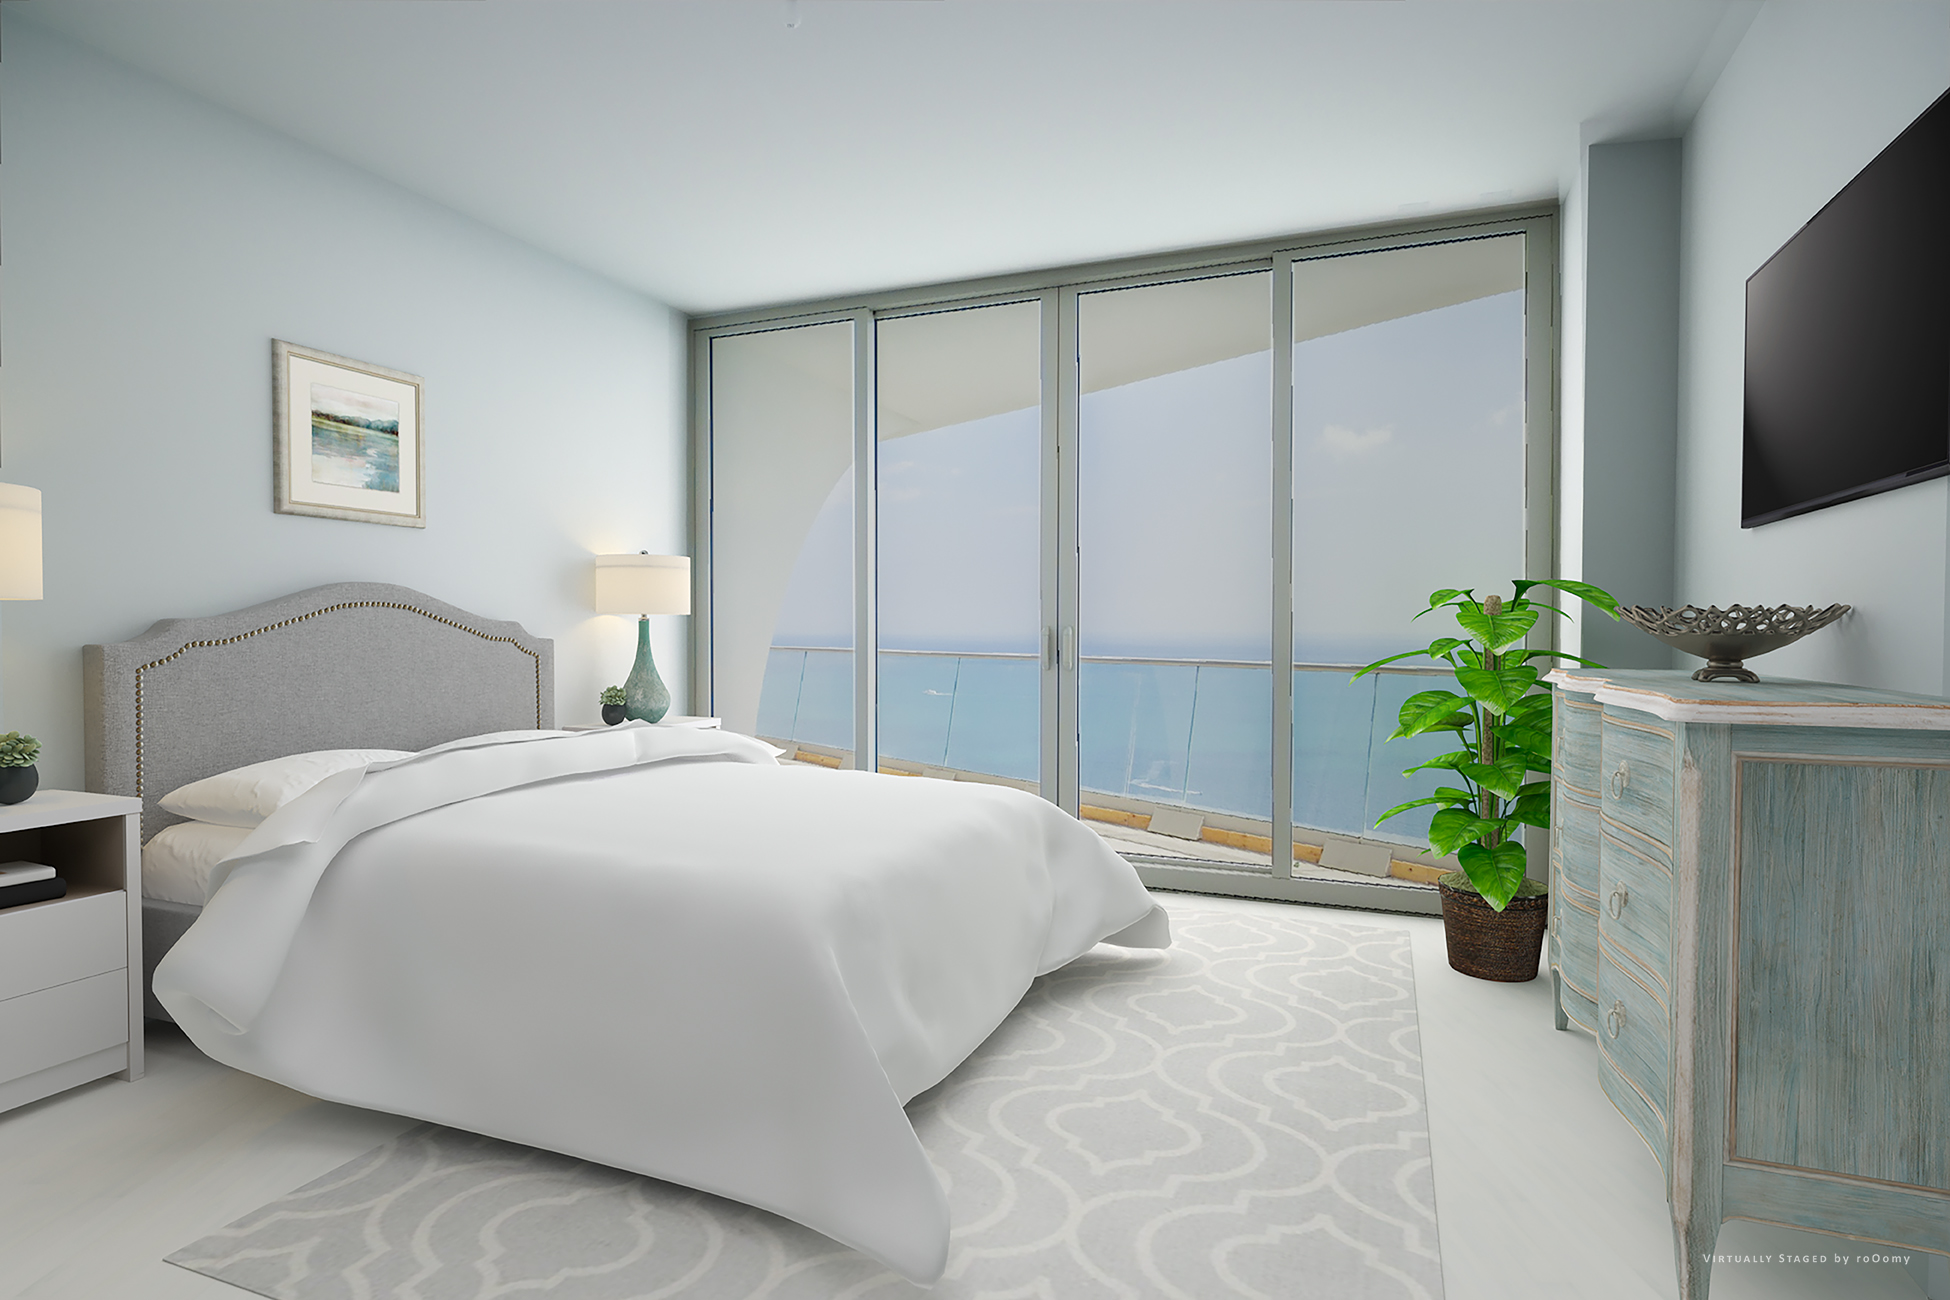 Bedroom1 - Transitional_Render.jpg